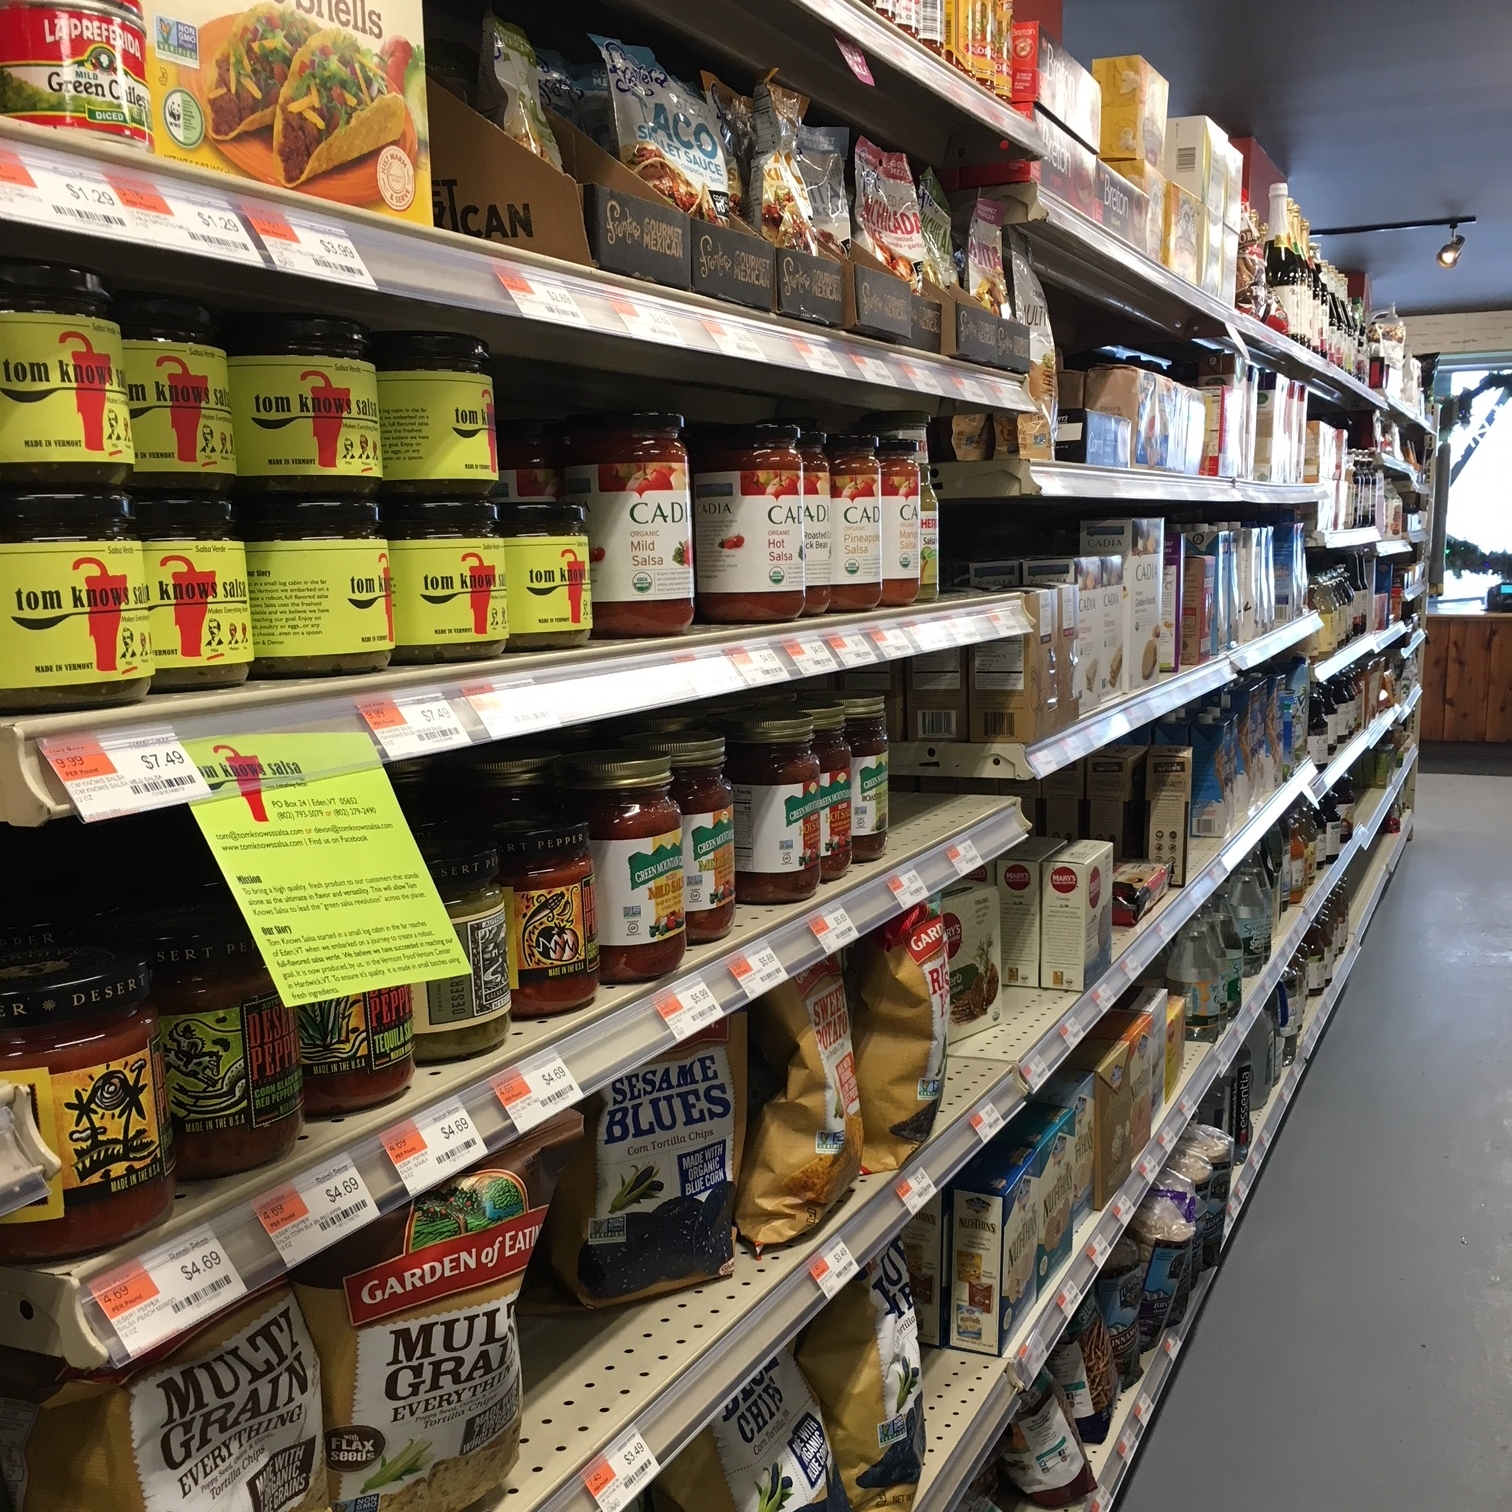 Grocery - Our center store grocery aisles have all your basics covered---great national brands you've come to trust, some local one-of-a-kind offerings and some adventurous items to inspire your palate and provide substance to your everyday meals. Cereal, olive oils, baking needs, pasta . . . you get the idea. Great products, value, and customer service beyond compare. Let MoCo complete your shopping list!